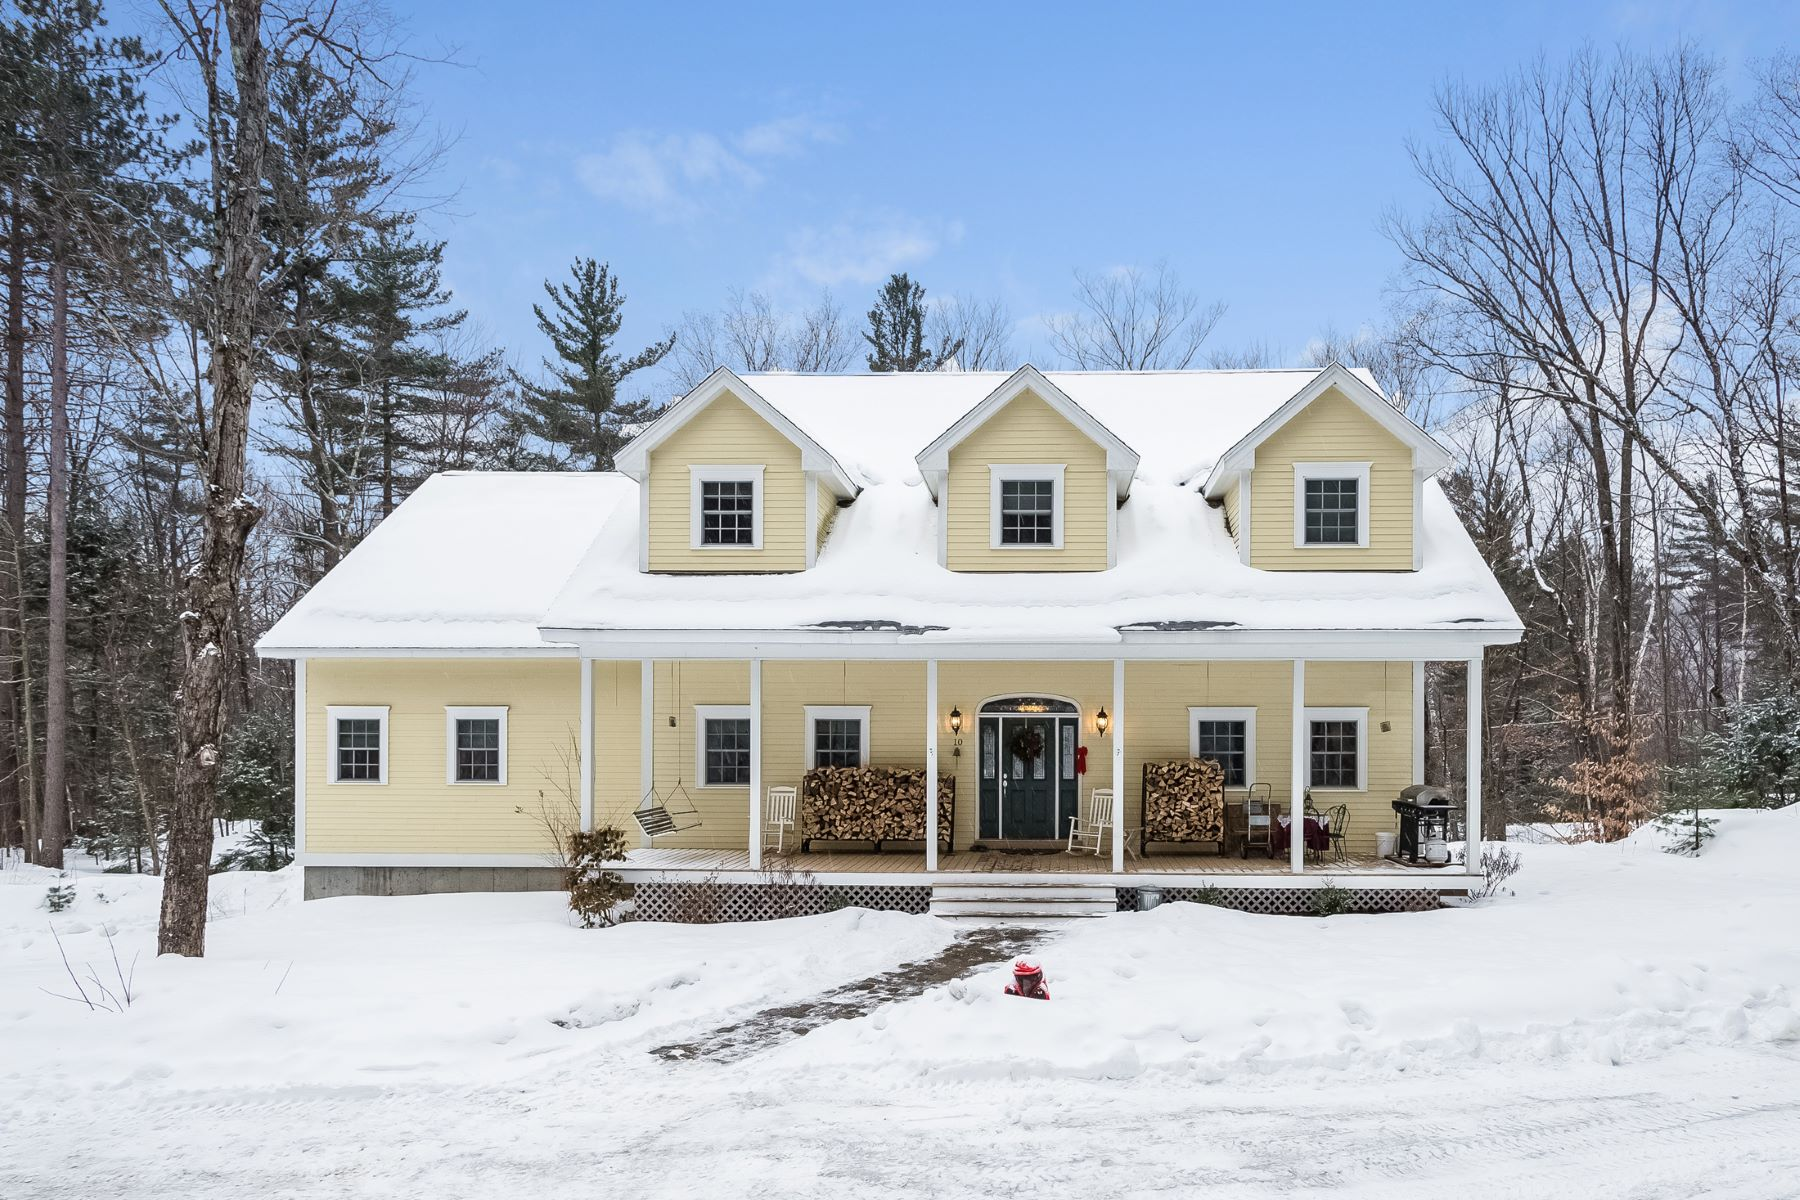 Single Family Home for Sale at Easy Living in the White Mountains 10 Old Fairfield Rd Woodstock, 03293 United States